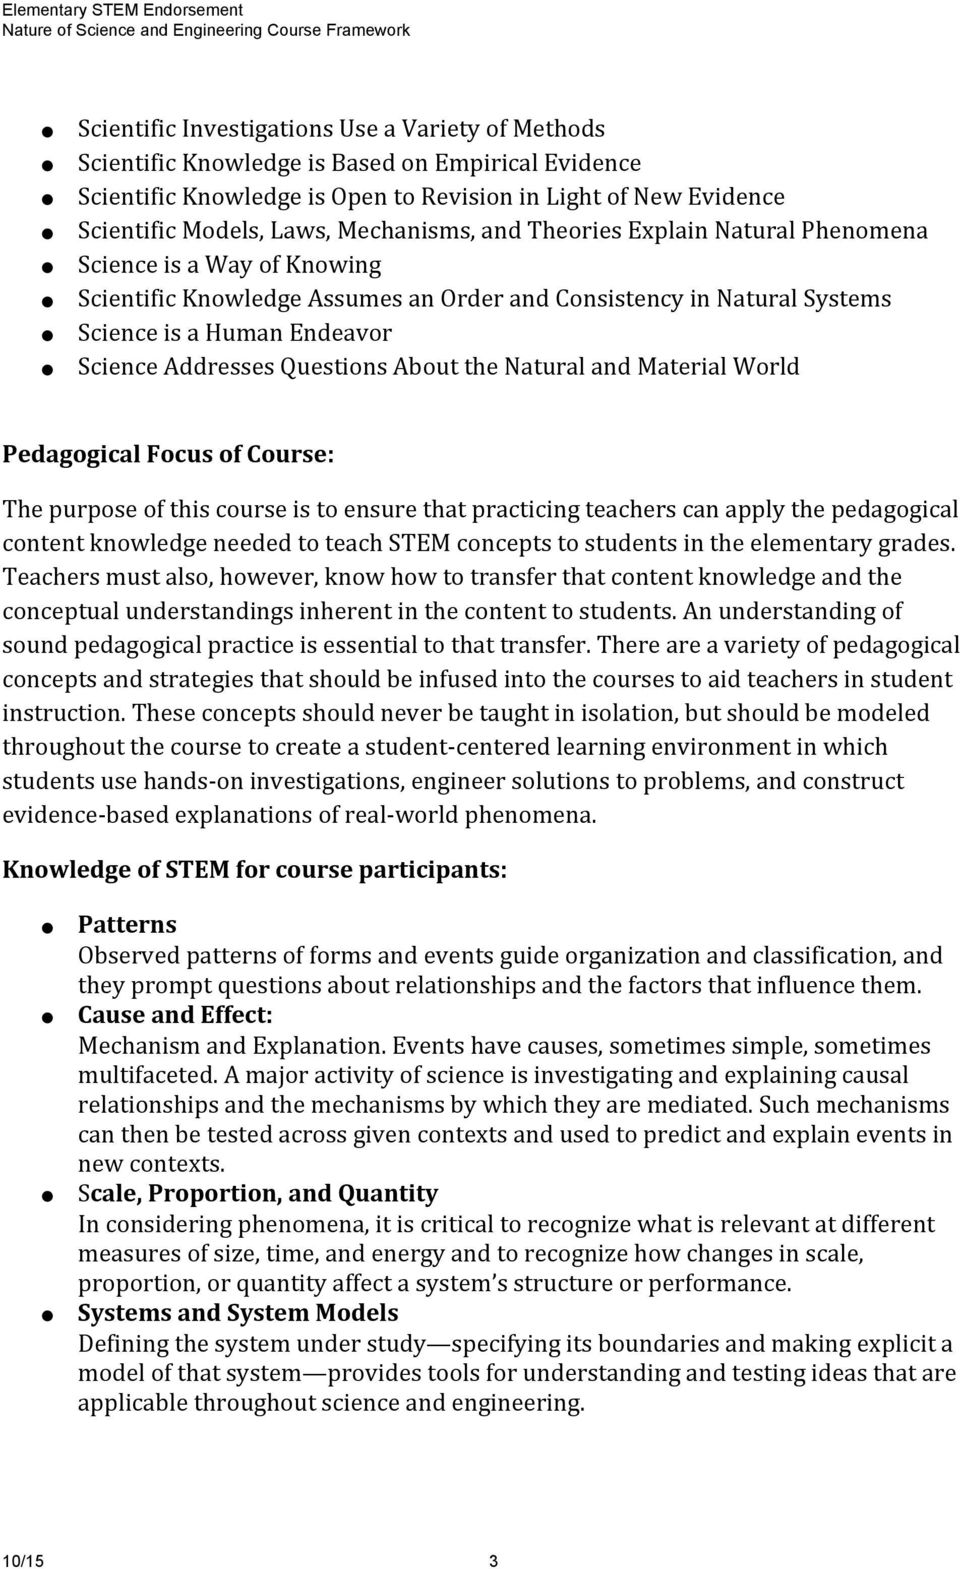 Questions About the Natural and Material World Pedagogical Focus of Course: The purpose of this course is to ensure that practicing teachers can apply the pedagogical content knowledge needed to